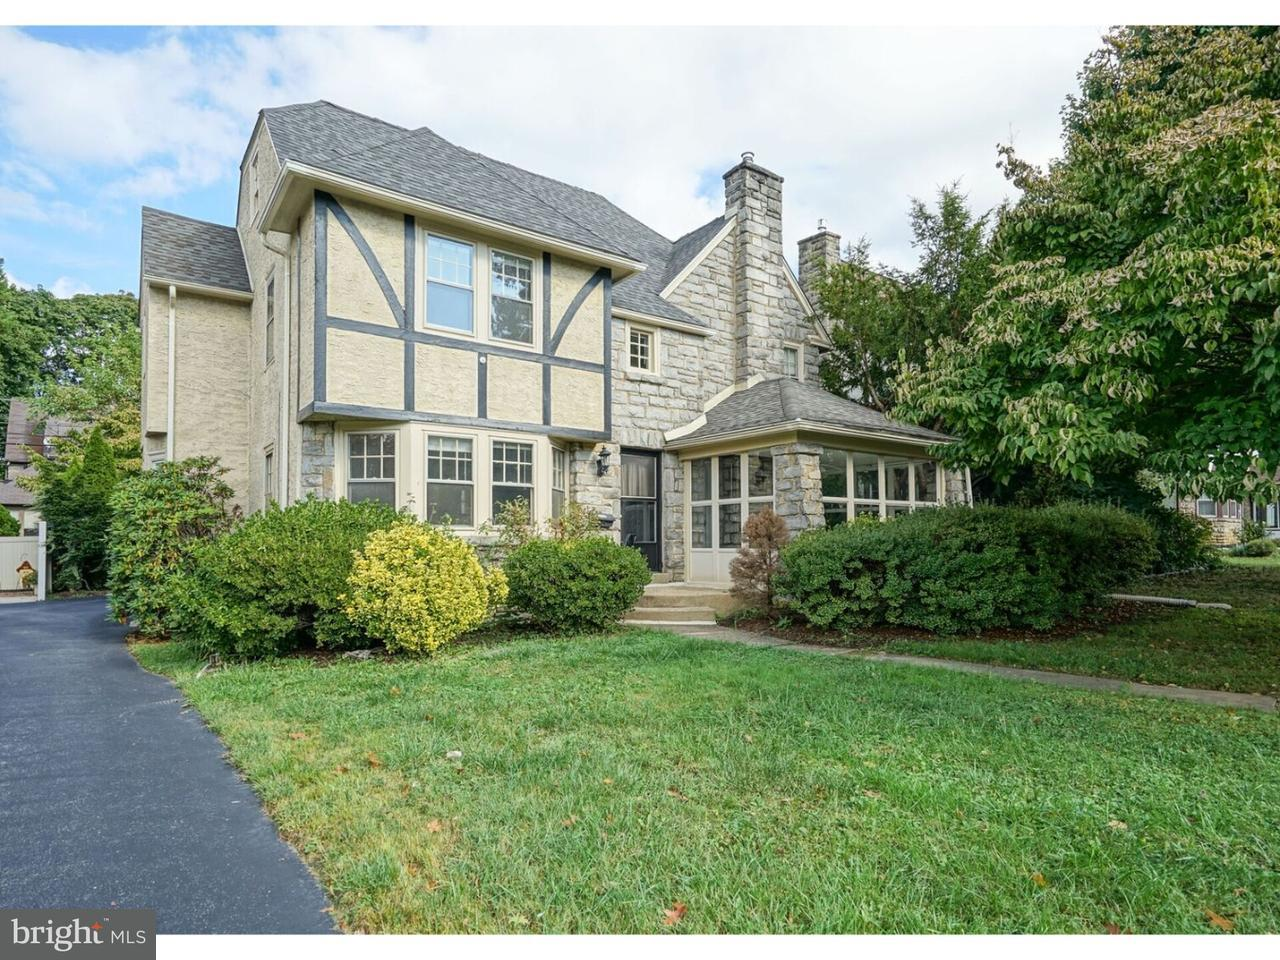 1117  Belfield Drexel Hill, PA 19026